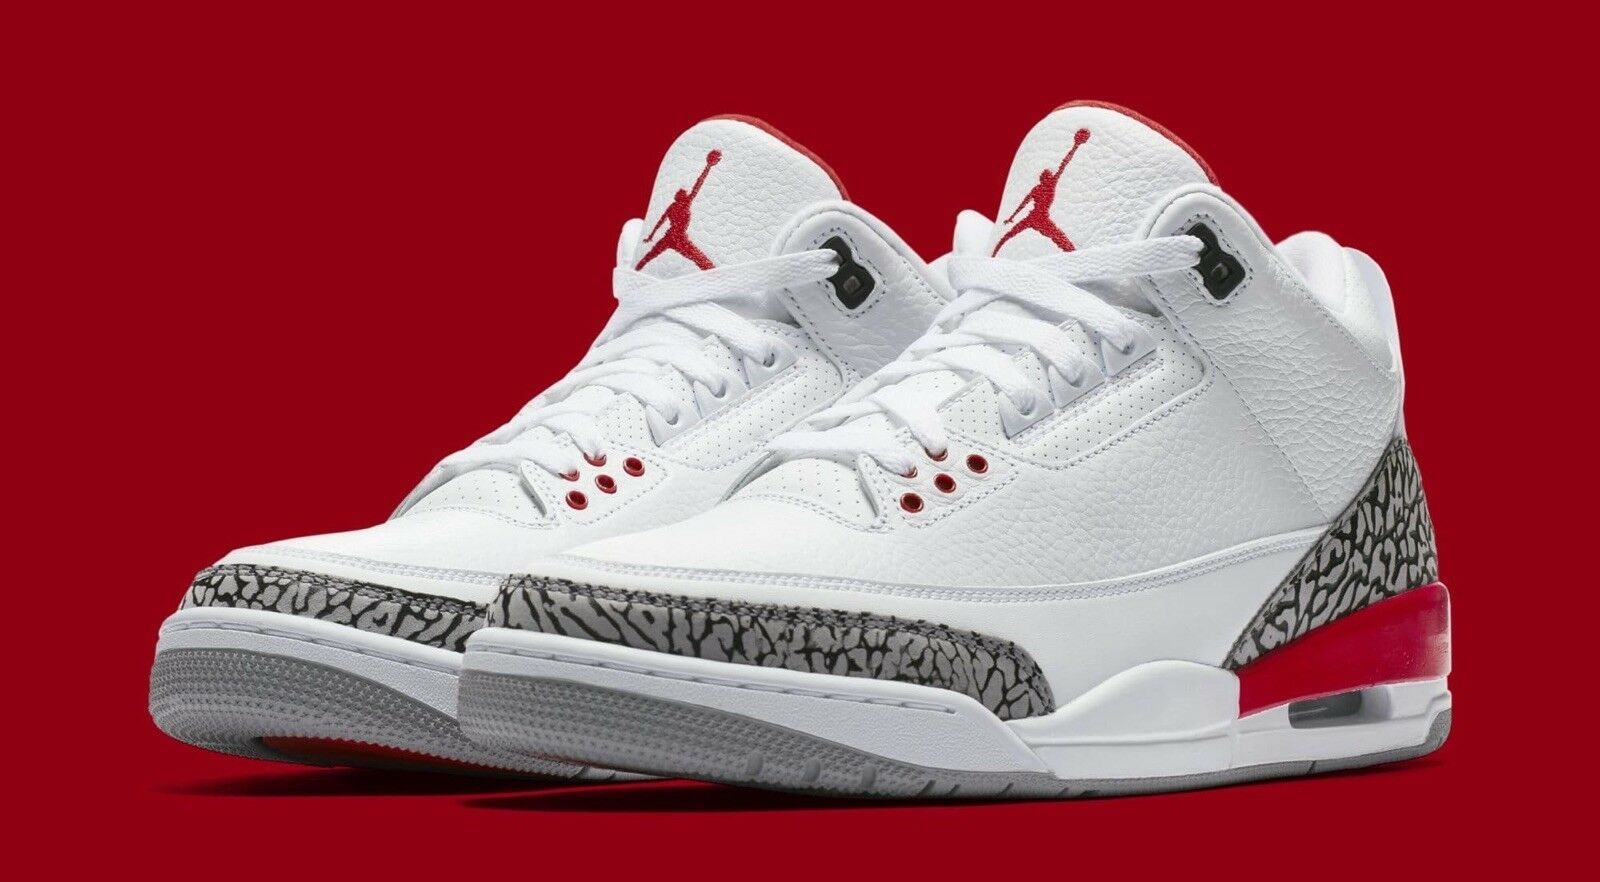 Nike air jordan fire 3 retro -